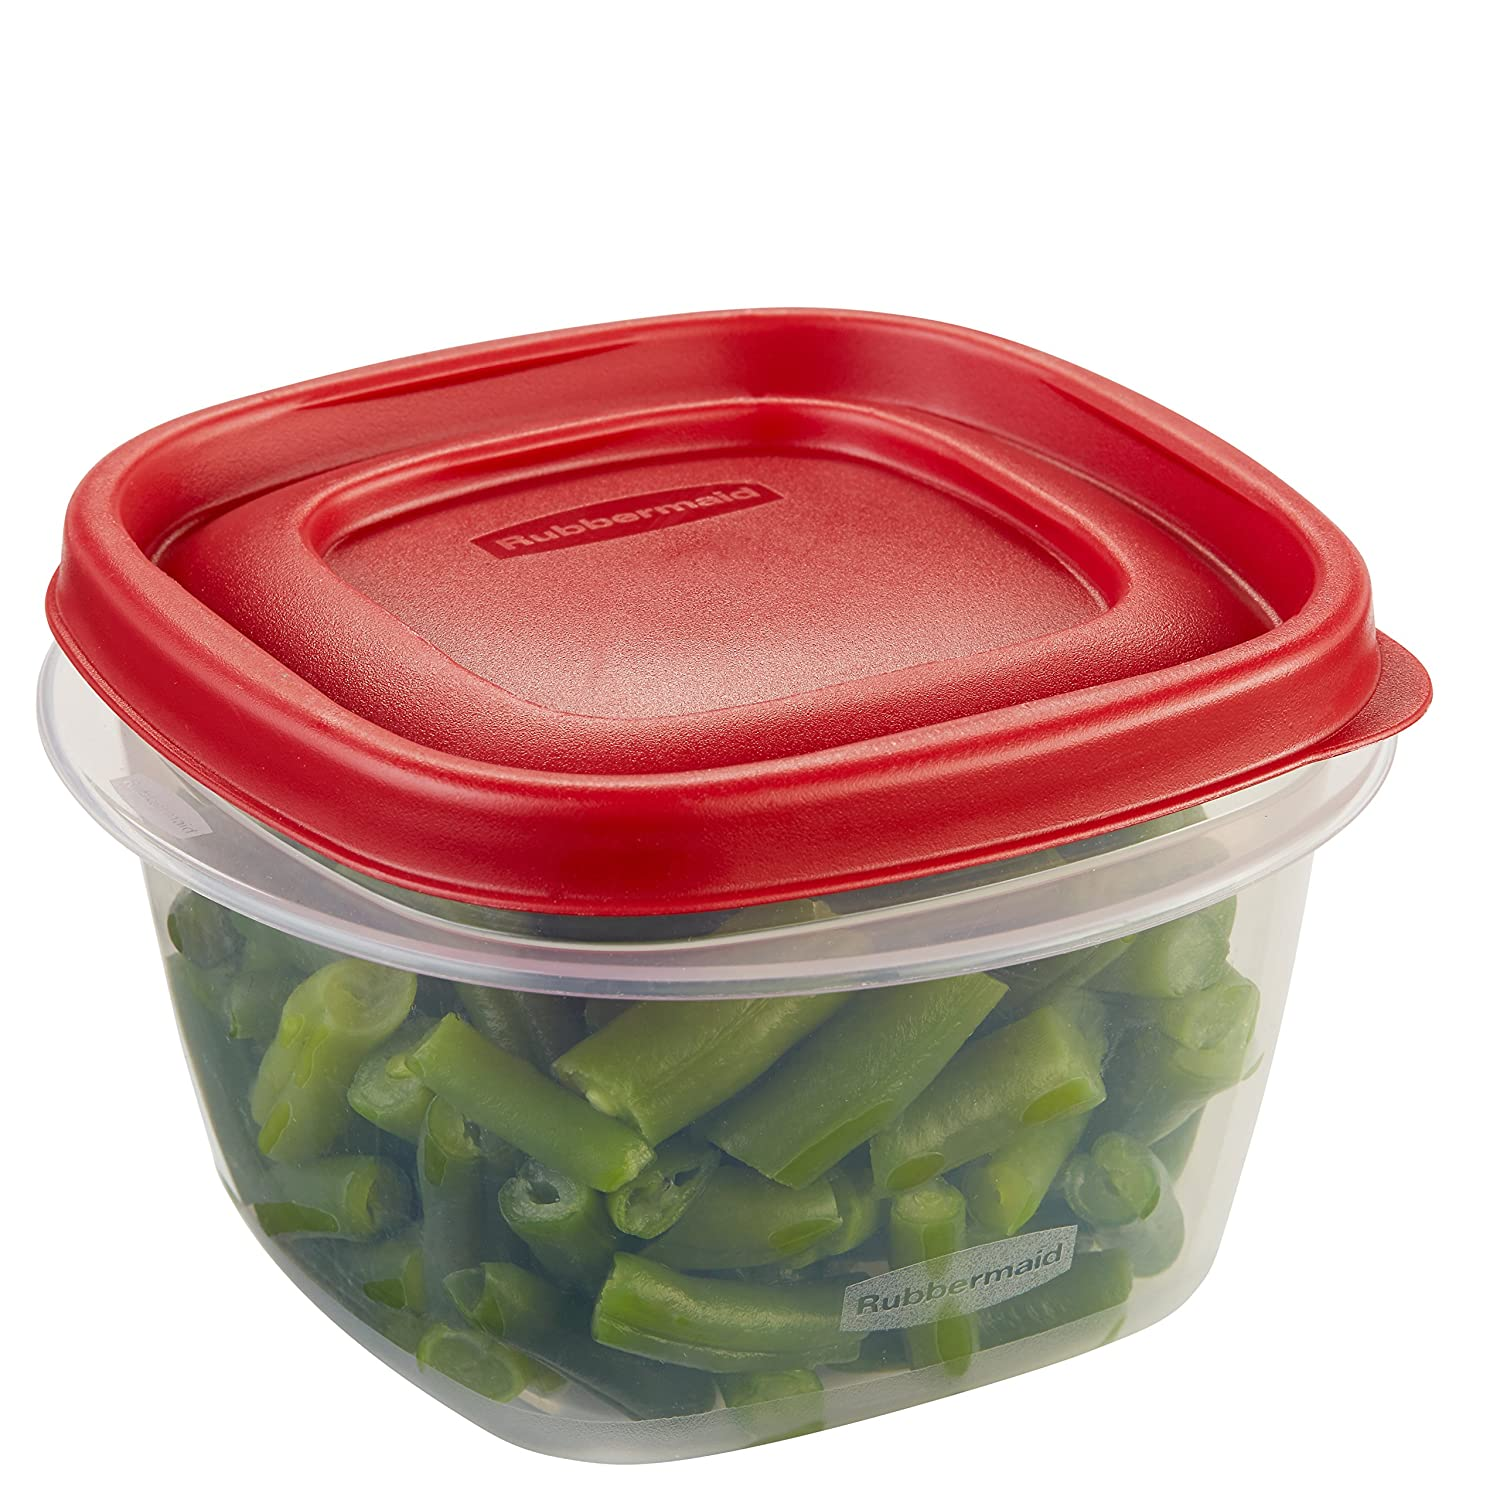 Rubbermaid Easy Find Lids Food Storage Container, 2 Cup, Racer Red 1777085